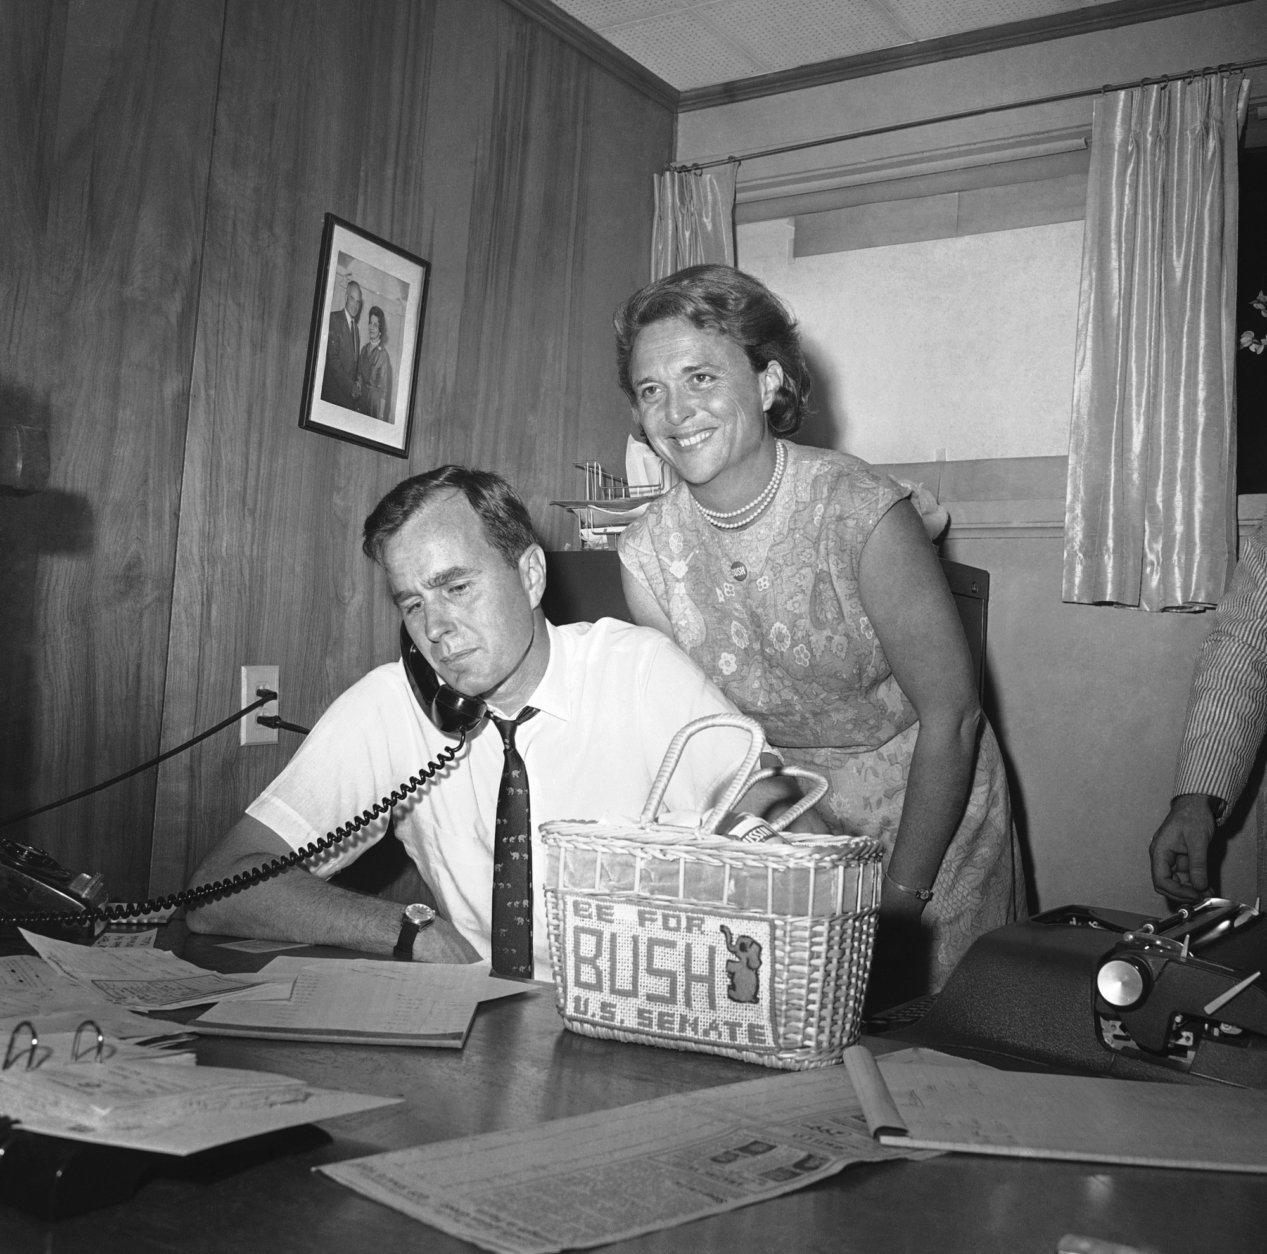 """FILE - In this June 6, 1964 file photo, George Bush, candidate for the Republican nomination for the U.S. Senate, gets returns by phone at his headquarters in Houston as his wife Barbara, beams her pleasure at the news. Former first couple George and Barbara Bush's relationship is a true love story, described by granddaughter Jenna Bush Hager as """"remarkable."""" They met at a Christmas dance. She was 17. He was 18. Two years later they were married. Now 73 years later, with Barbara Bush declining further medical care for health problems, they are the longest-married couple in presidential history. (AP Photo/Ed Kolenovsky, File)"""